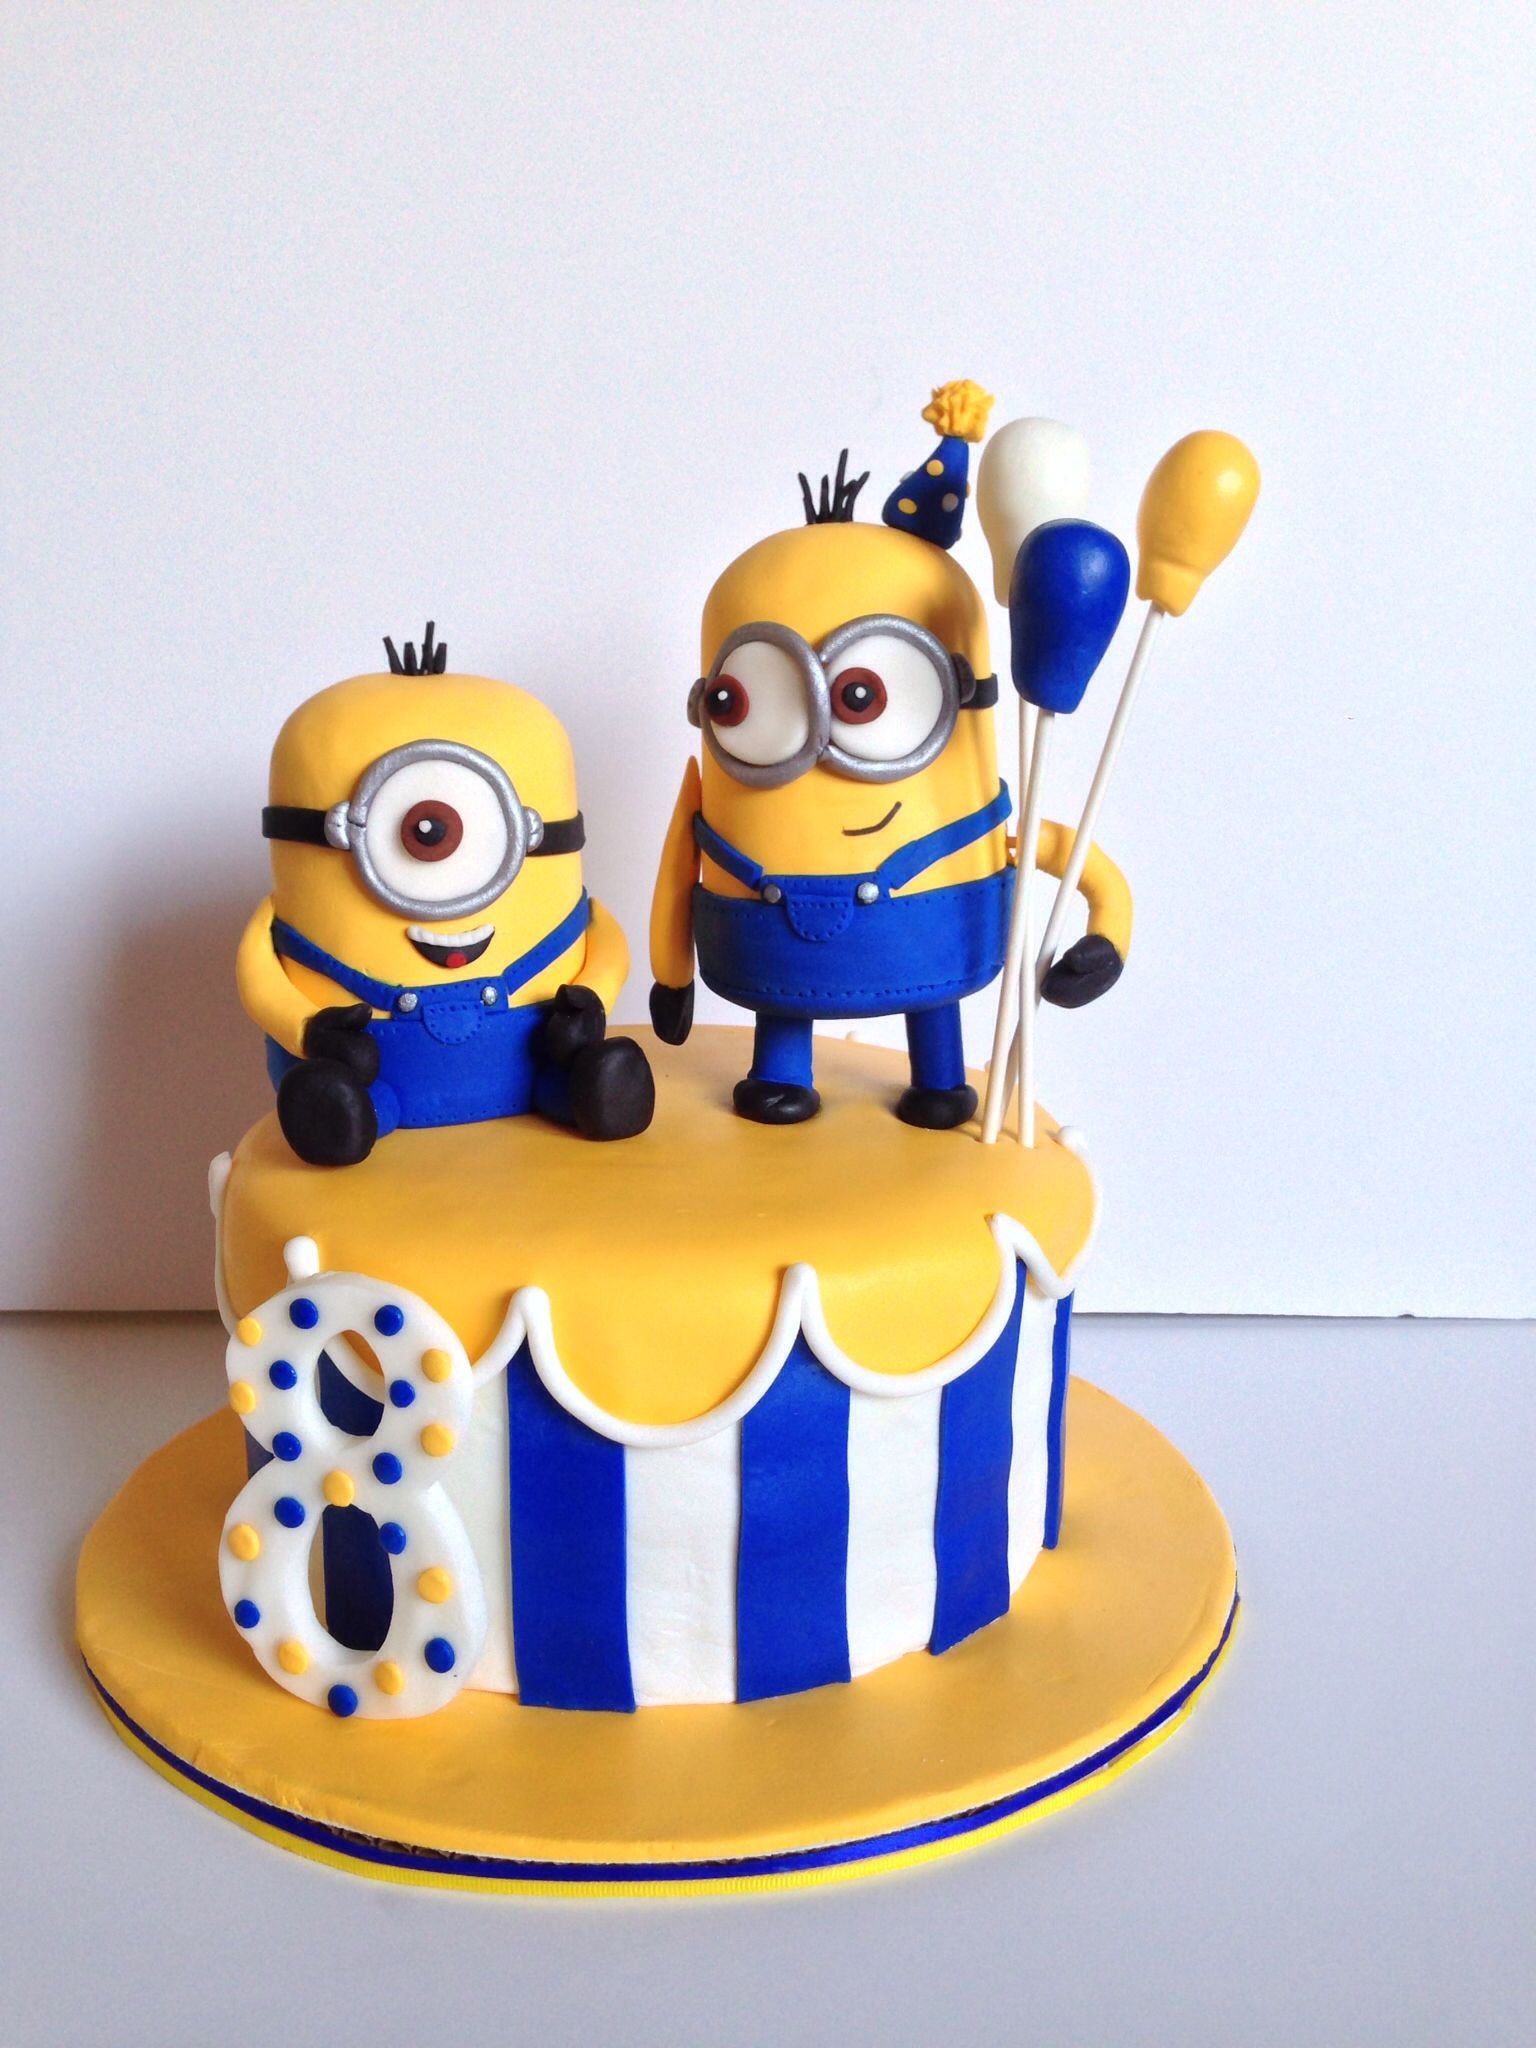 Minion Birthday Cake Novelty Cakes Pinterest Birthday Cake